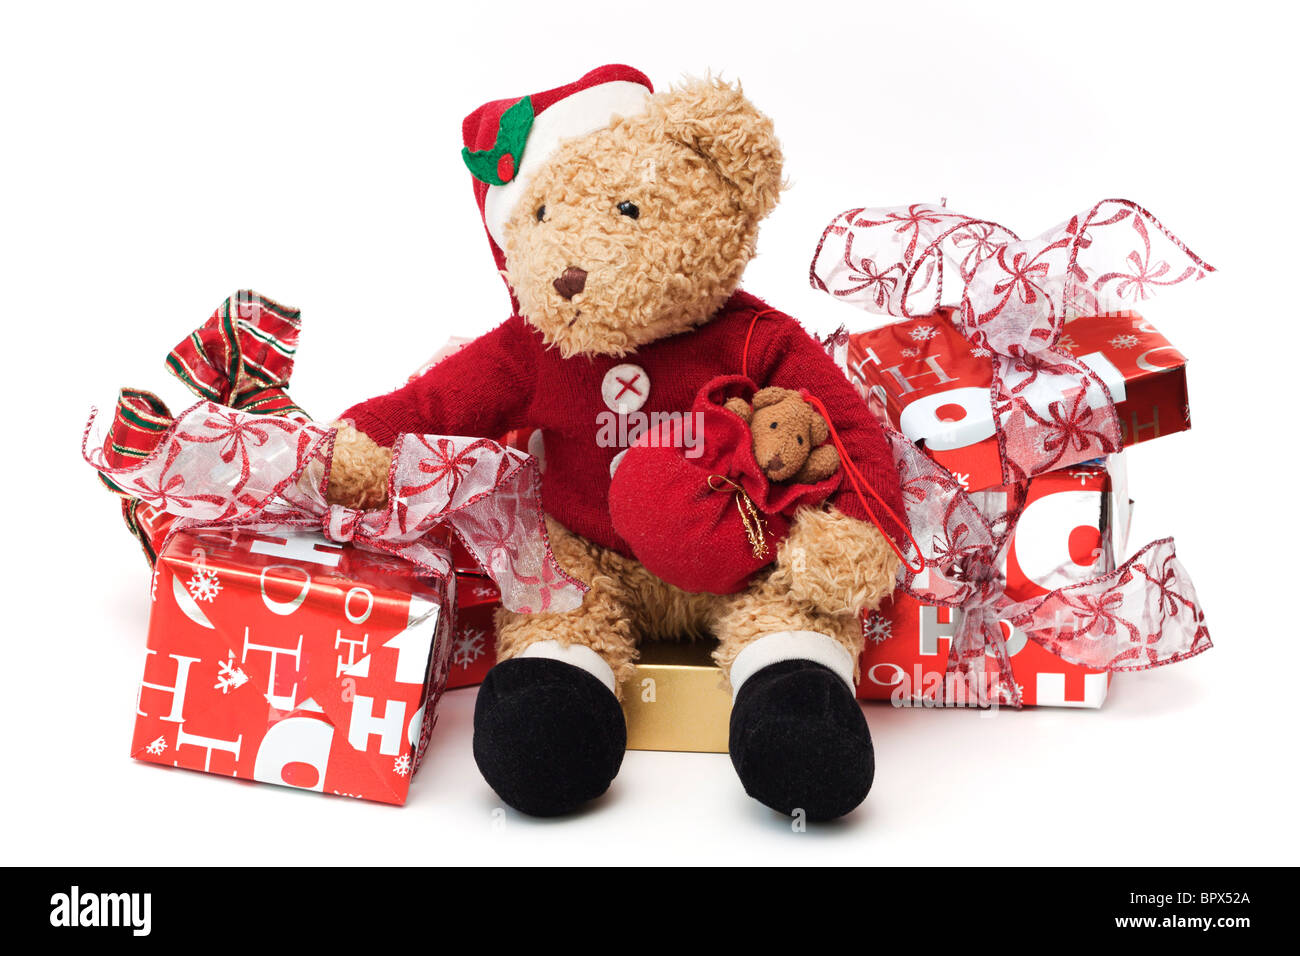 Teddy at Christmas. Well loved child's teddy dressed as Santa Claus sitting among wrapped Christmas presents. - Stock Image